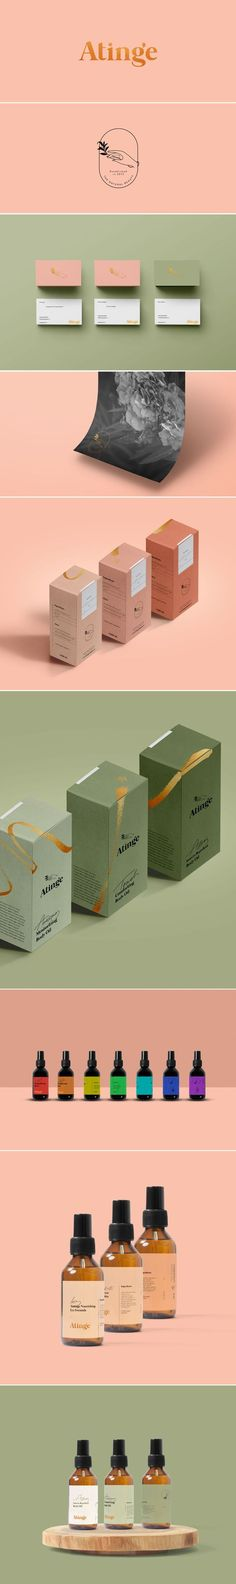 (35) Sophisticated and charming branding for Atinge by Cocorrina: | Branding and Design | Pinterest / Branding / Ideas / Inspiration / Brand / Design / Packaging / Beauty / Cosmetics / SkinCare / Botanical / Vintage / Retro / Line Art / Gold / Militar Green / Color Accent / Classic